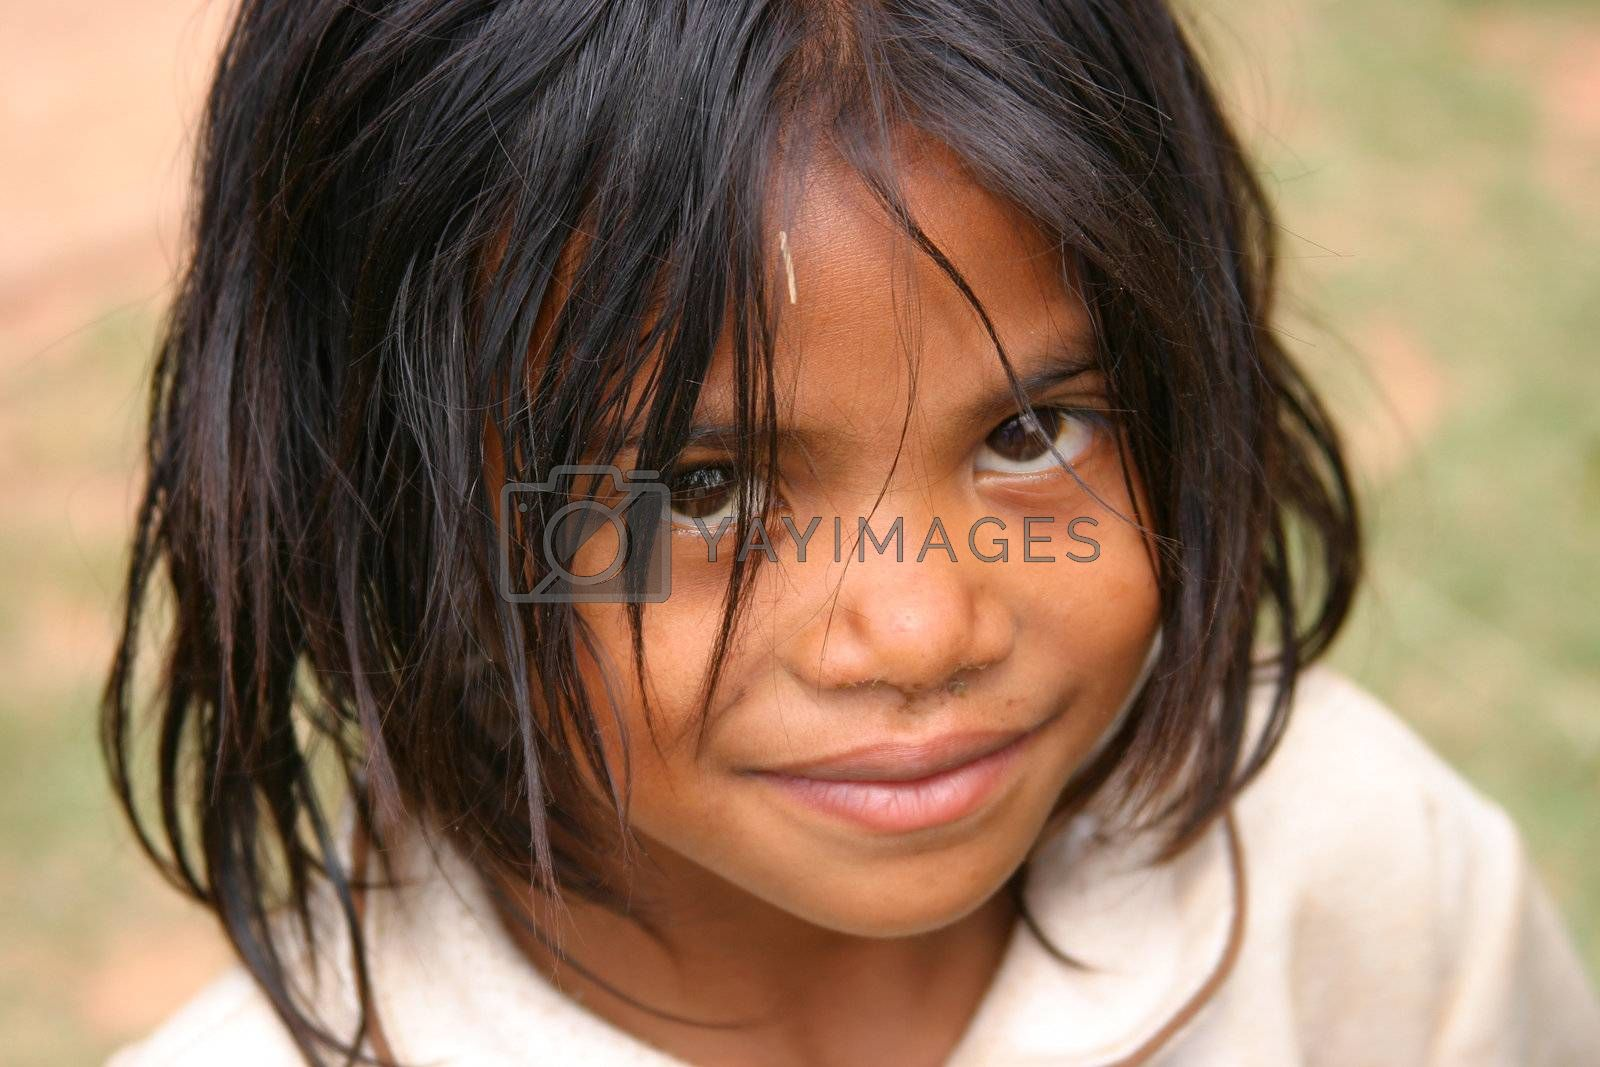 Smiling young girl in Madagascar looking up